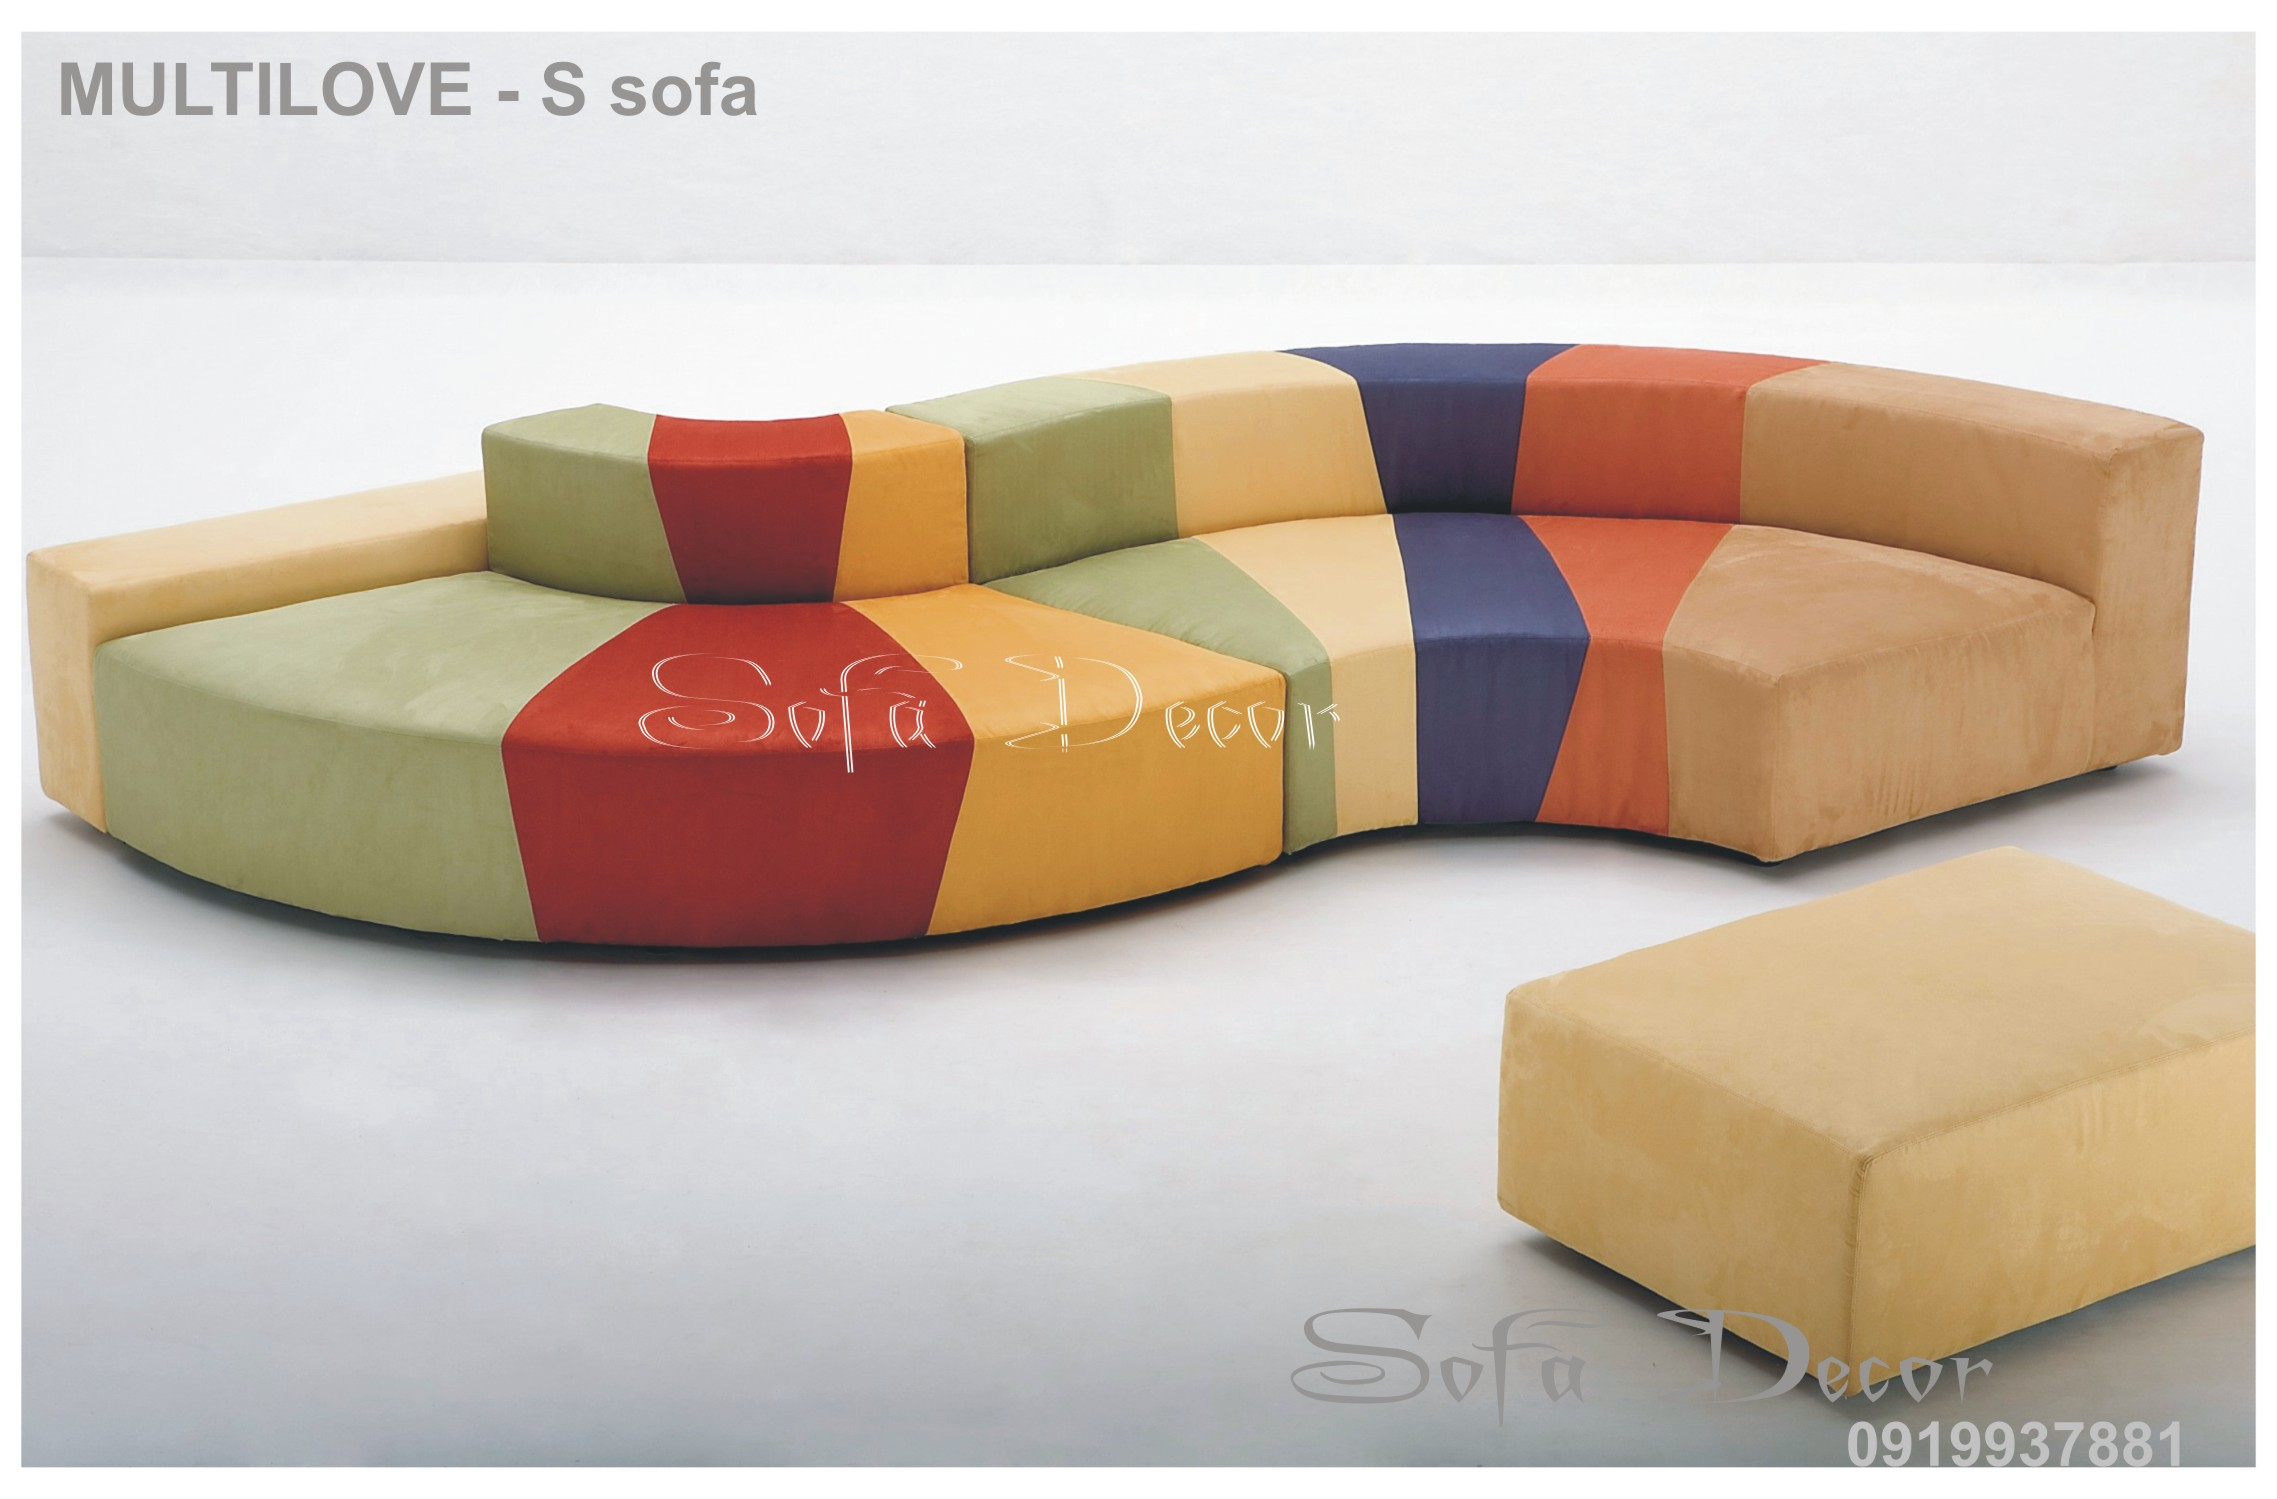 MULTILOVE Sofa